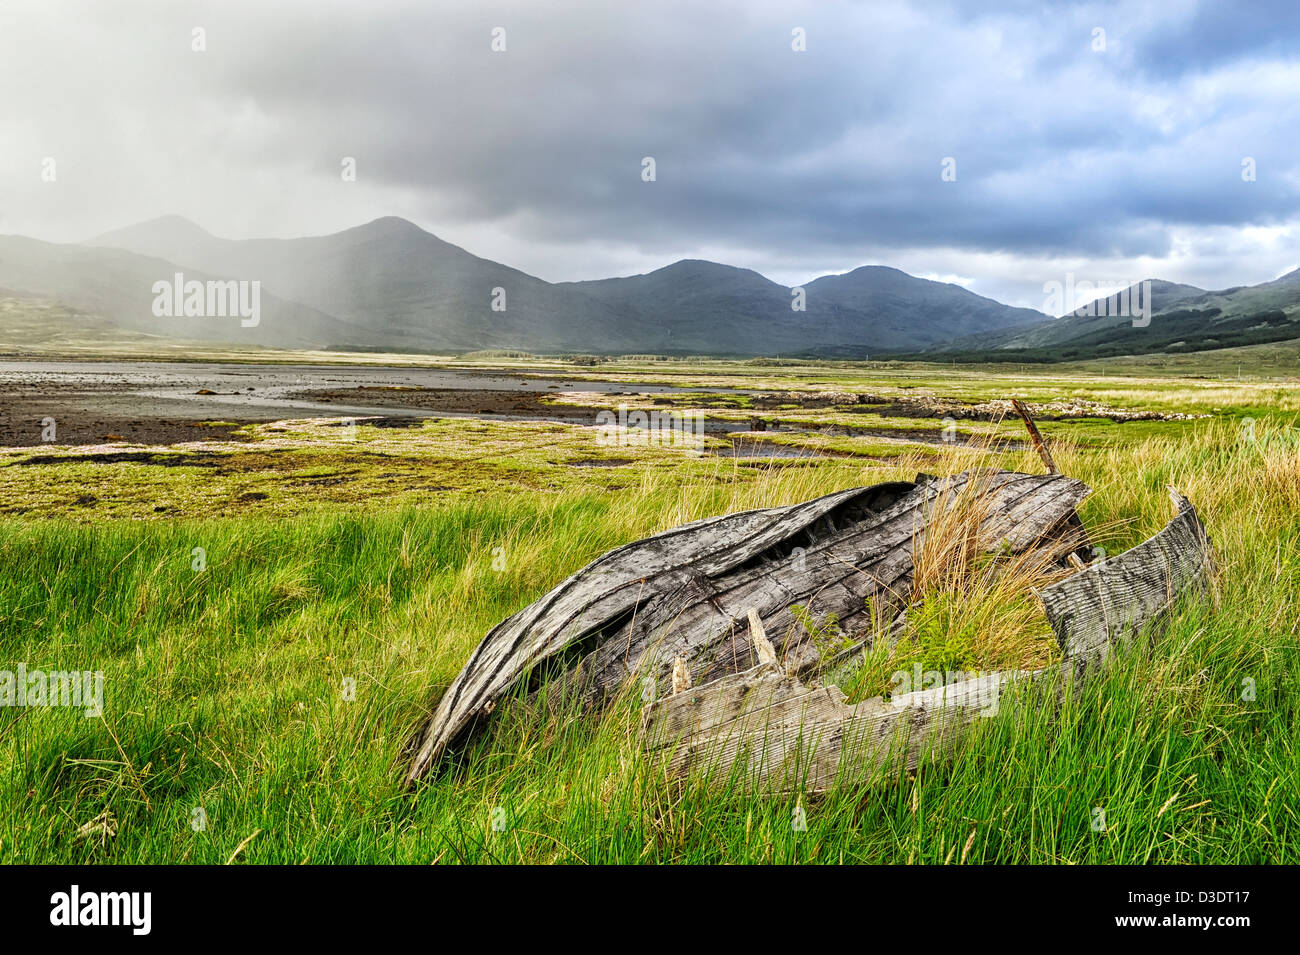 approaching storm & upturned old boat, mull, scotland - Stock Image